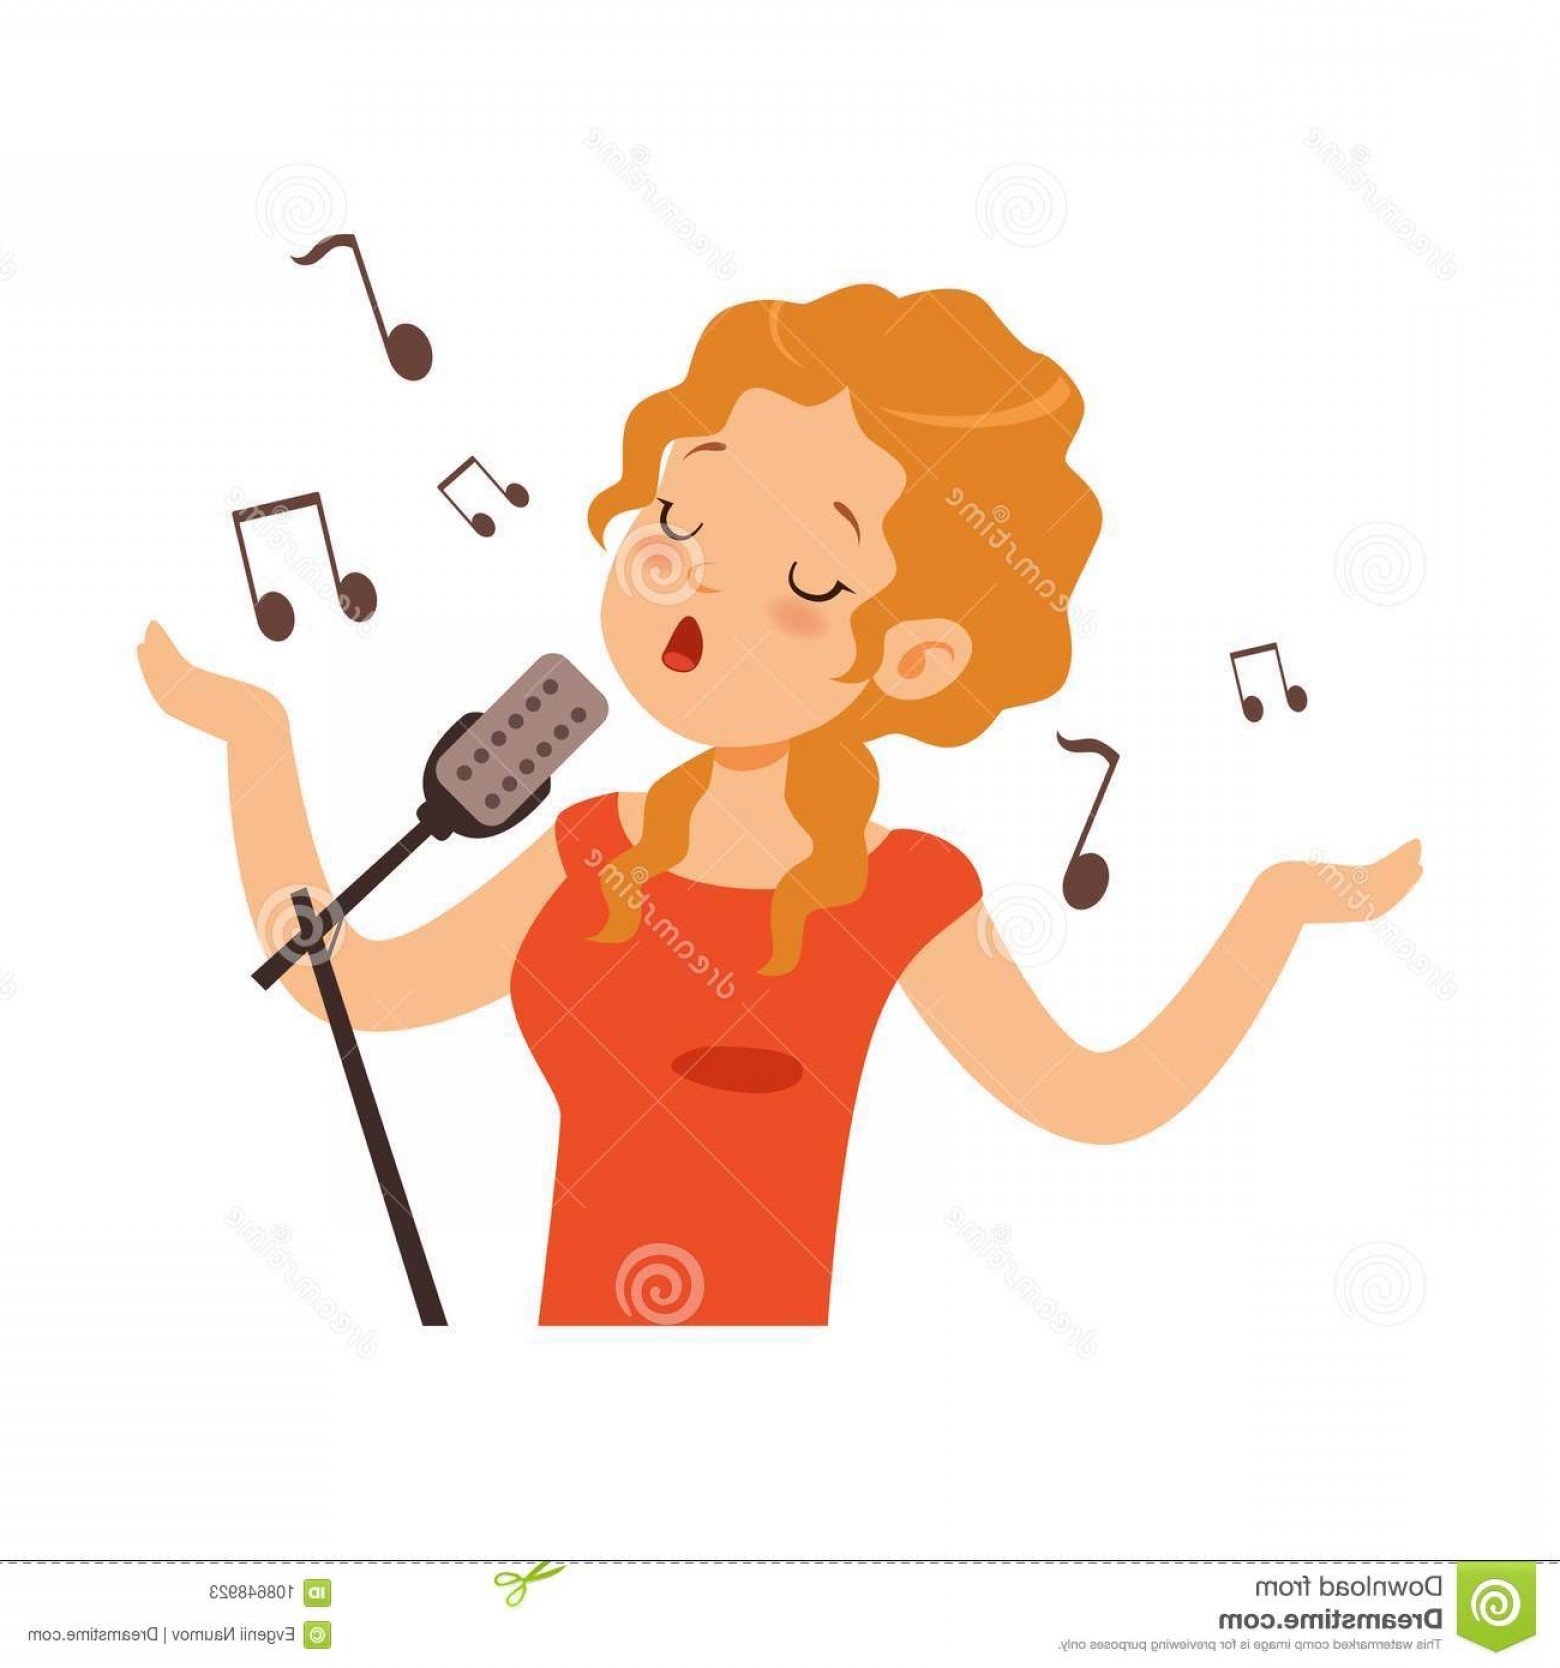 Singing Girls Vector Art: Girl Singing Microphone Singer Character Cartoon Vector Illustration White Background Girl Singing Microphone Image